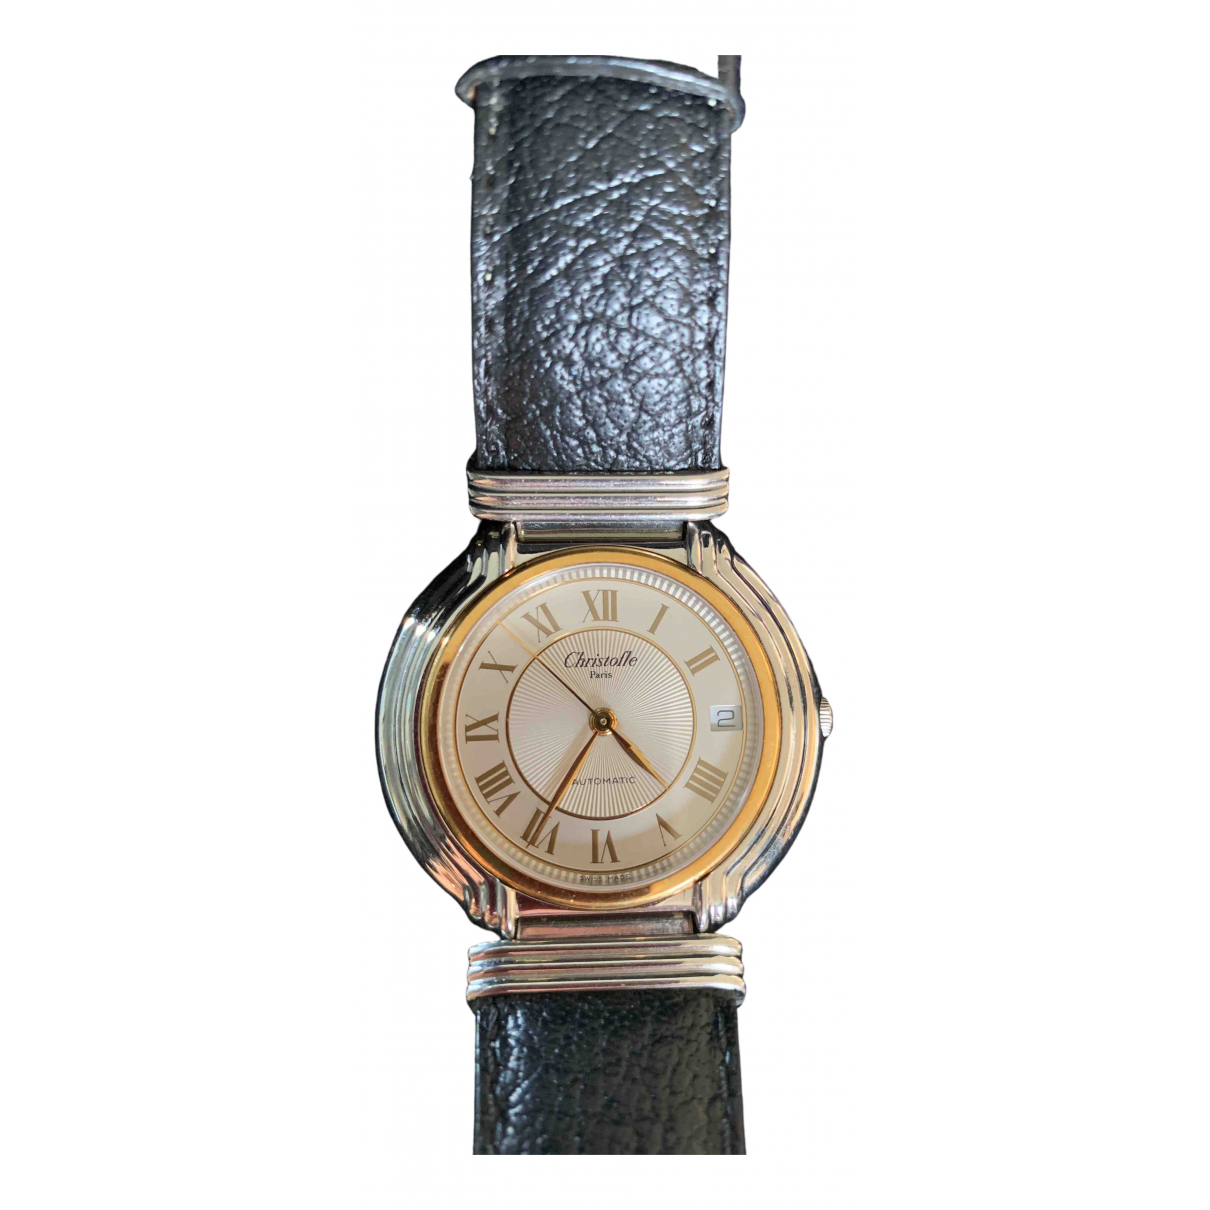 Christofle \N Black Steel watch for Women \N